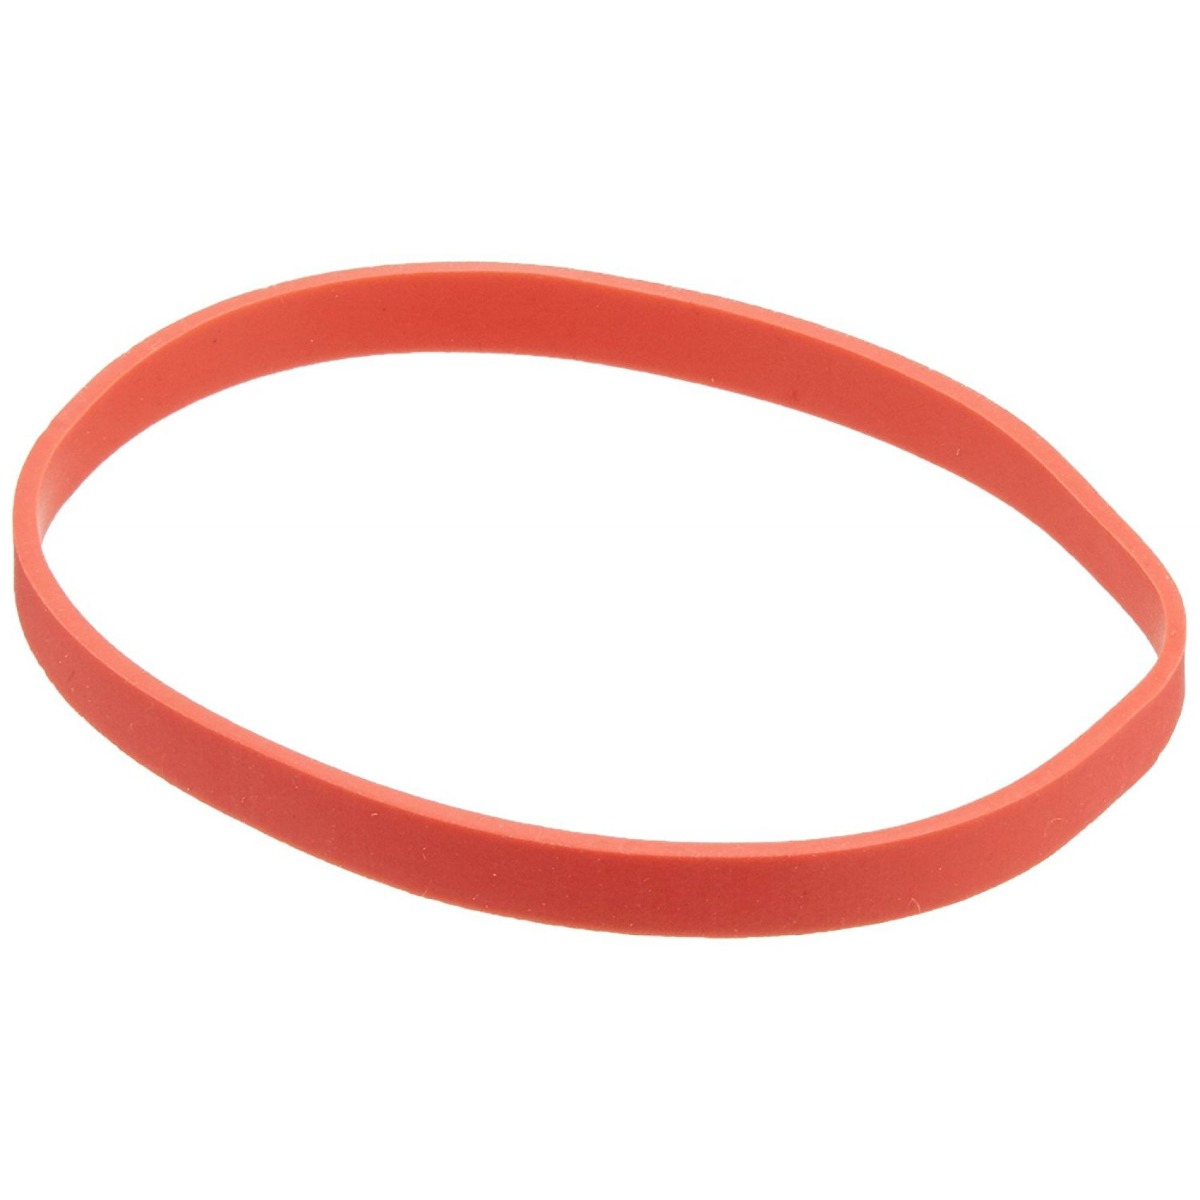 Color-Coded Latex-Free Rubber Bands, Light